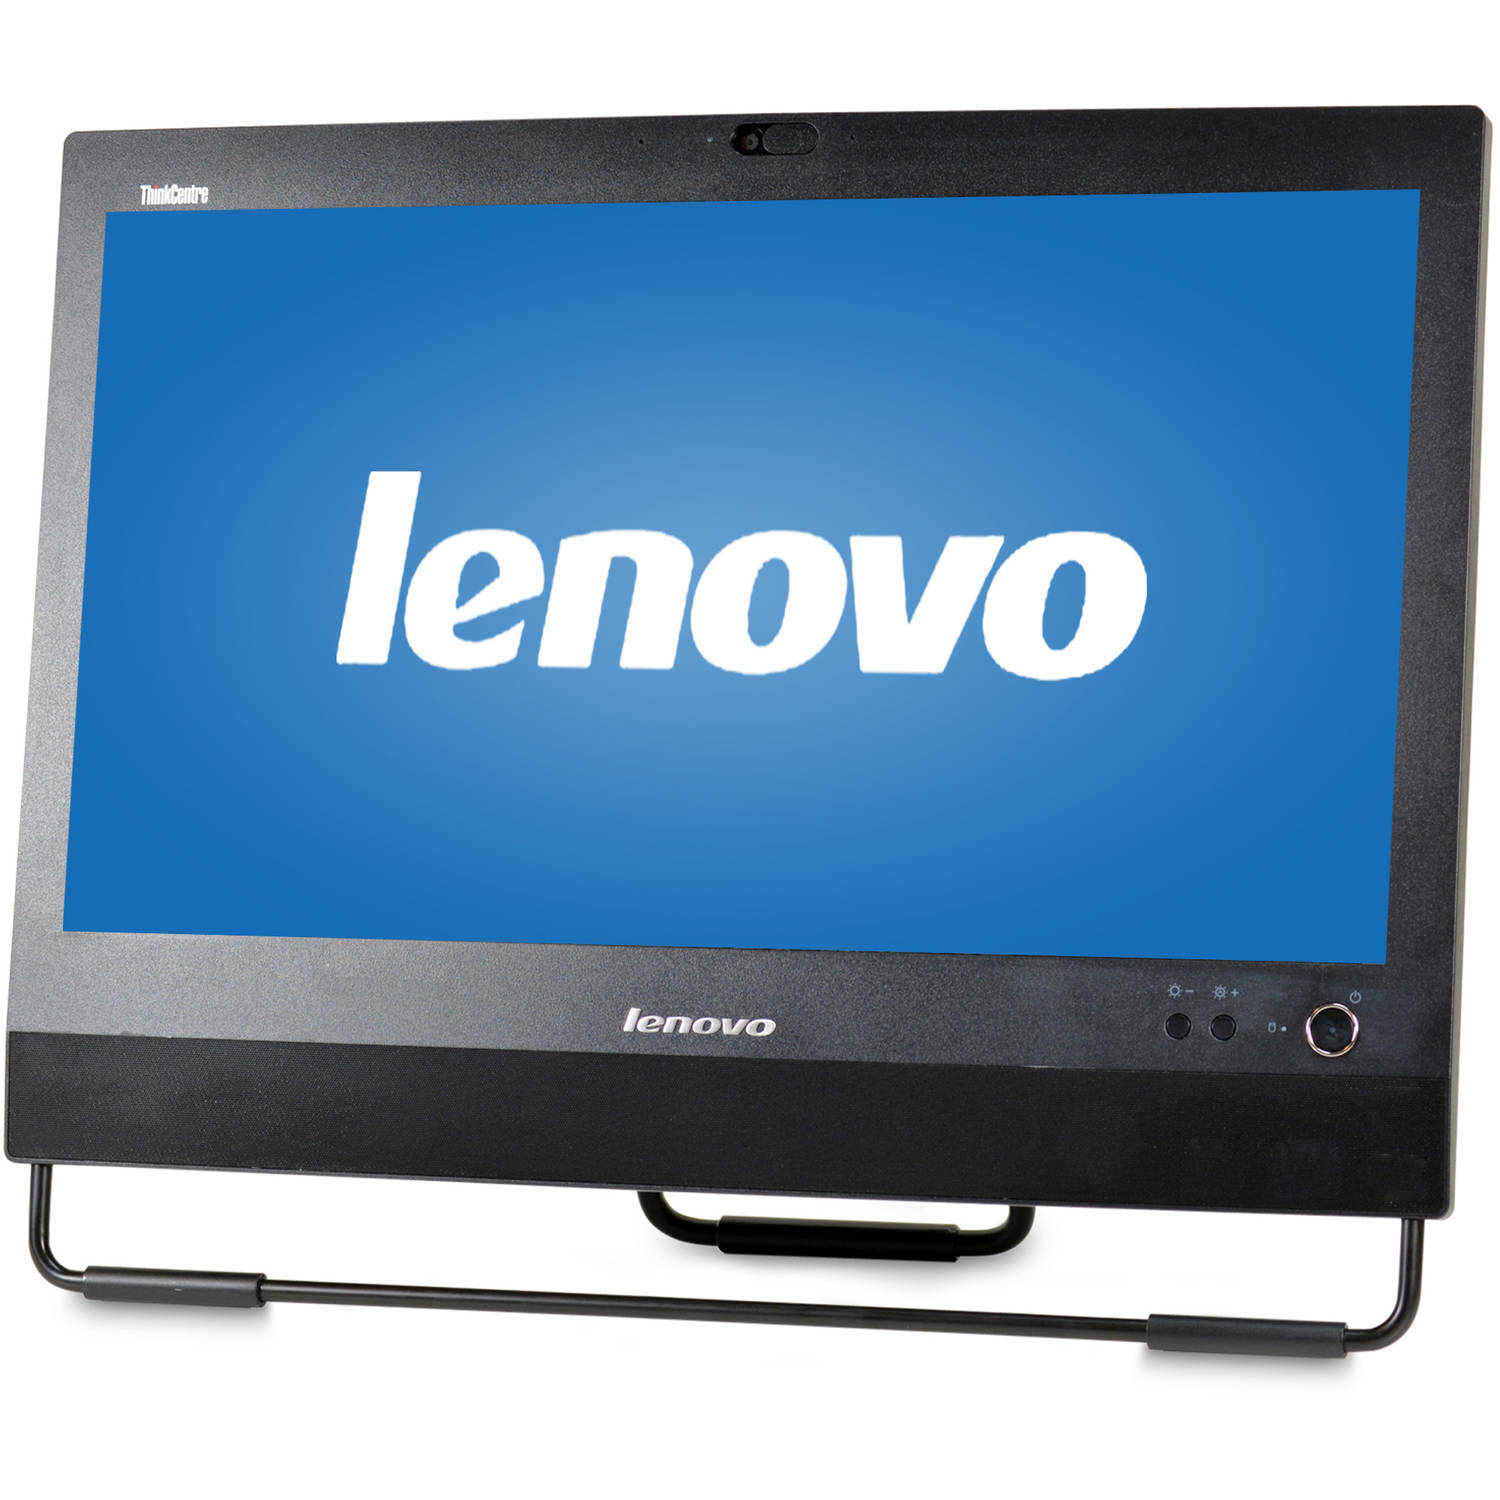 "Refurbished Lenovo ThinkCentre M71z All-in-One Desktop PC with Intel Core i5-2400S Processor, 4GB Memory, 20"" Monitor, 500GB Hard Drive and Windows 10 Pro"